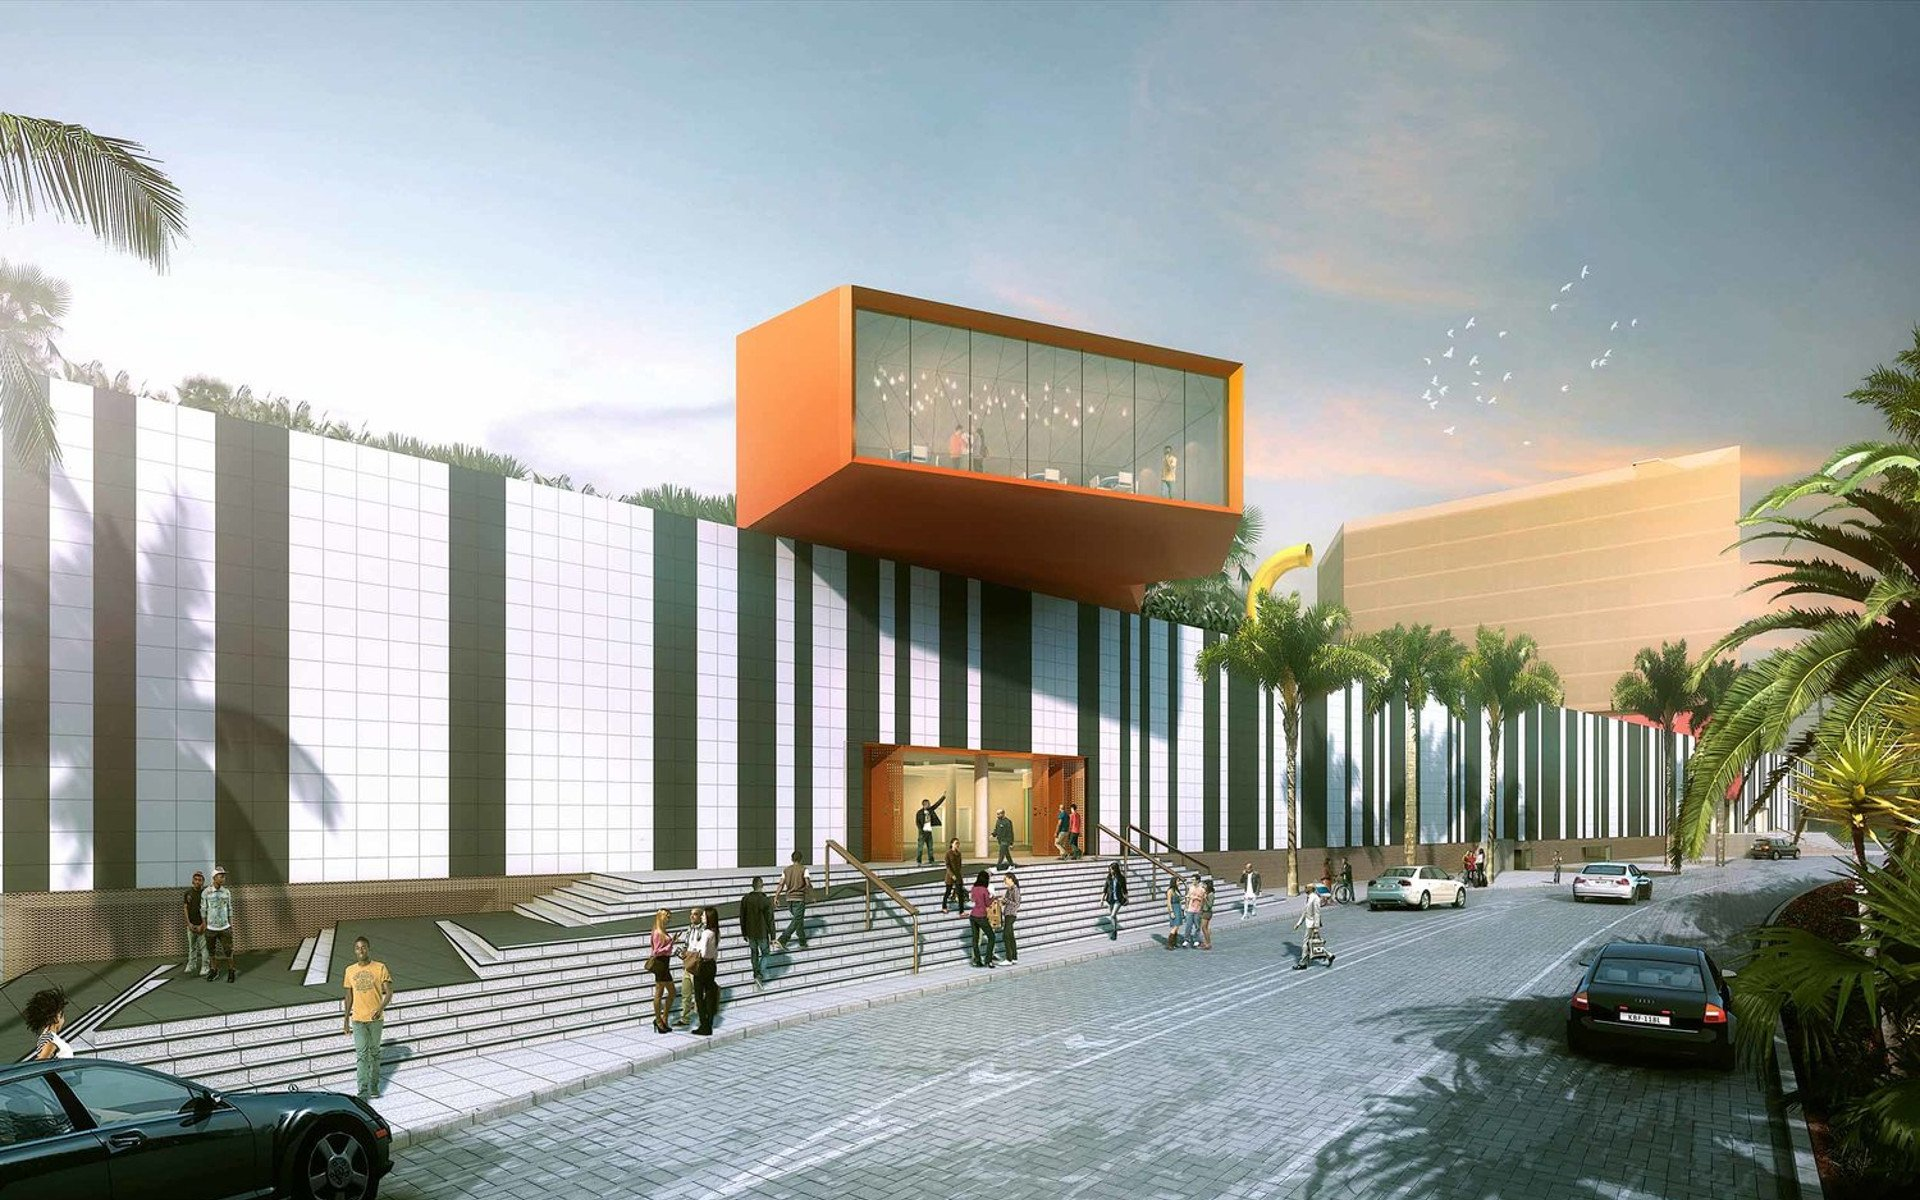 The Beacon will be the largest mall space on the periphery of the City Centre.